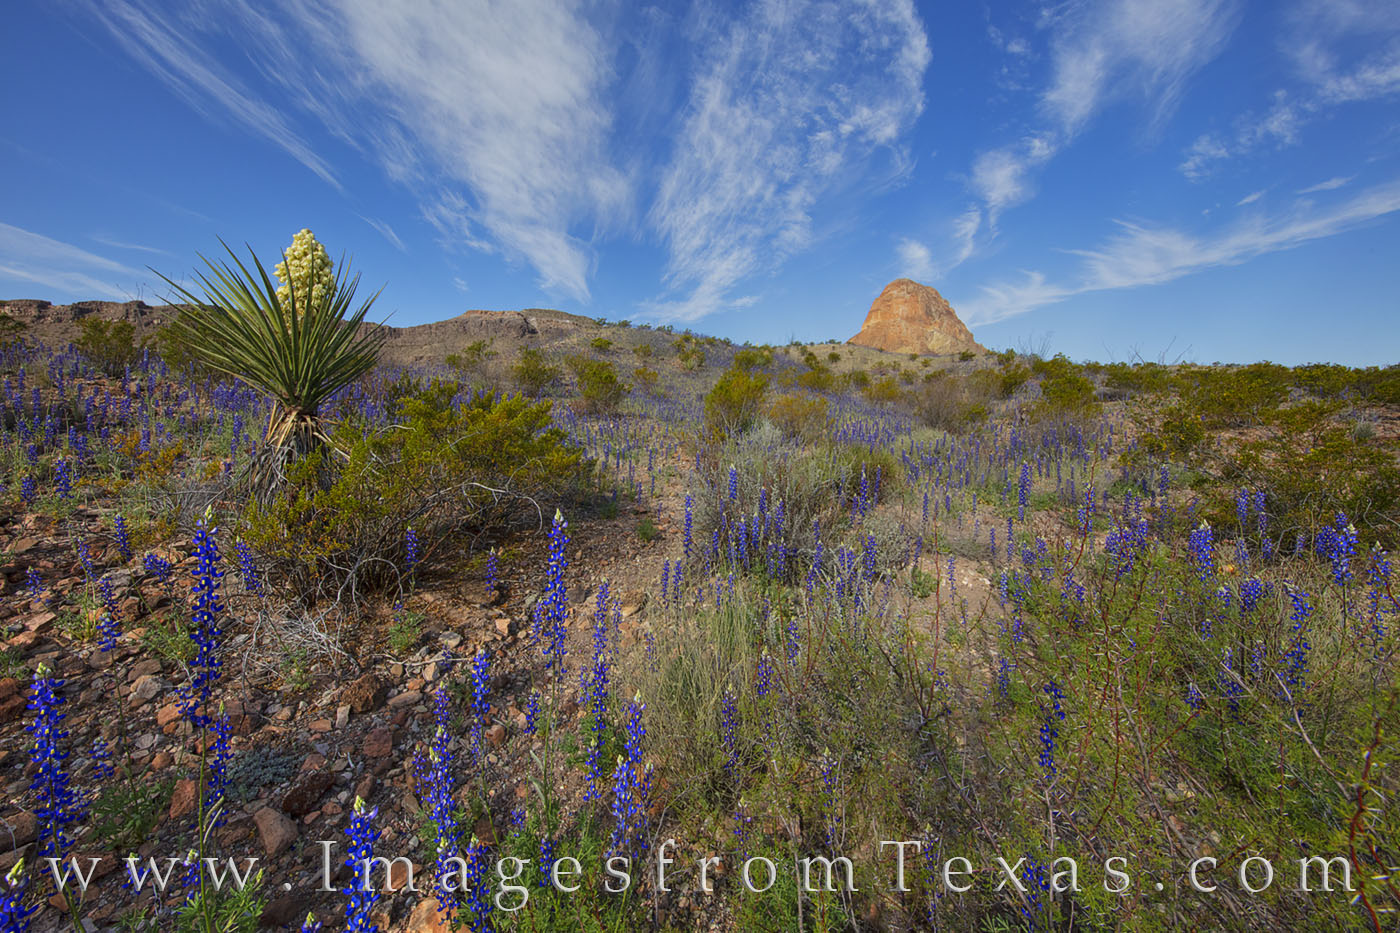 river road west, bluebonnets, big bend, yucca, cerro castellan, wildflowers, desert bloom, spring, chisos mountains, desert, photo